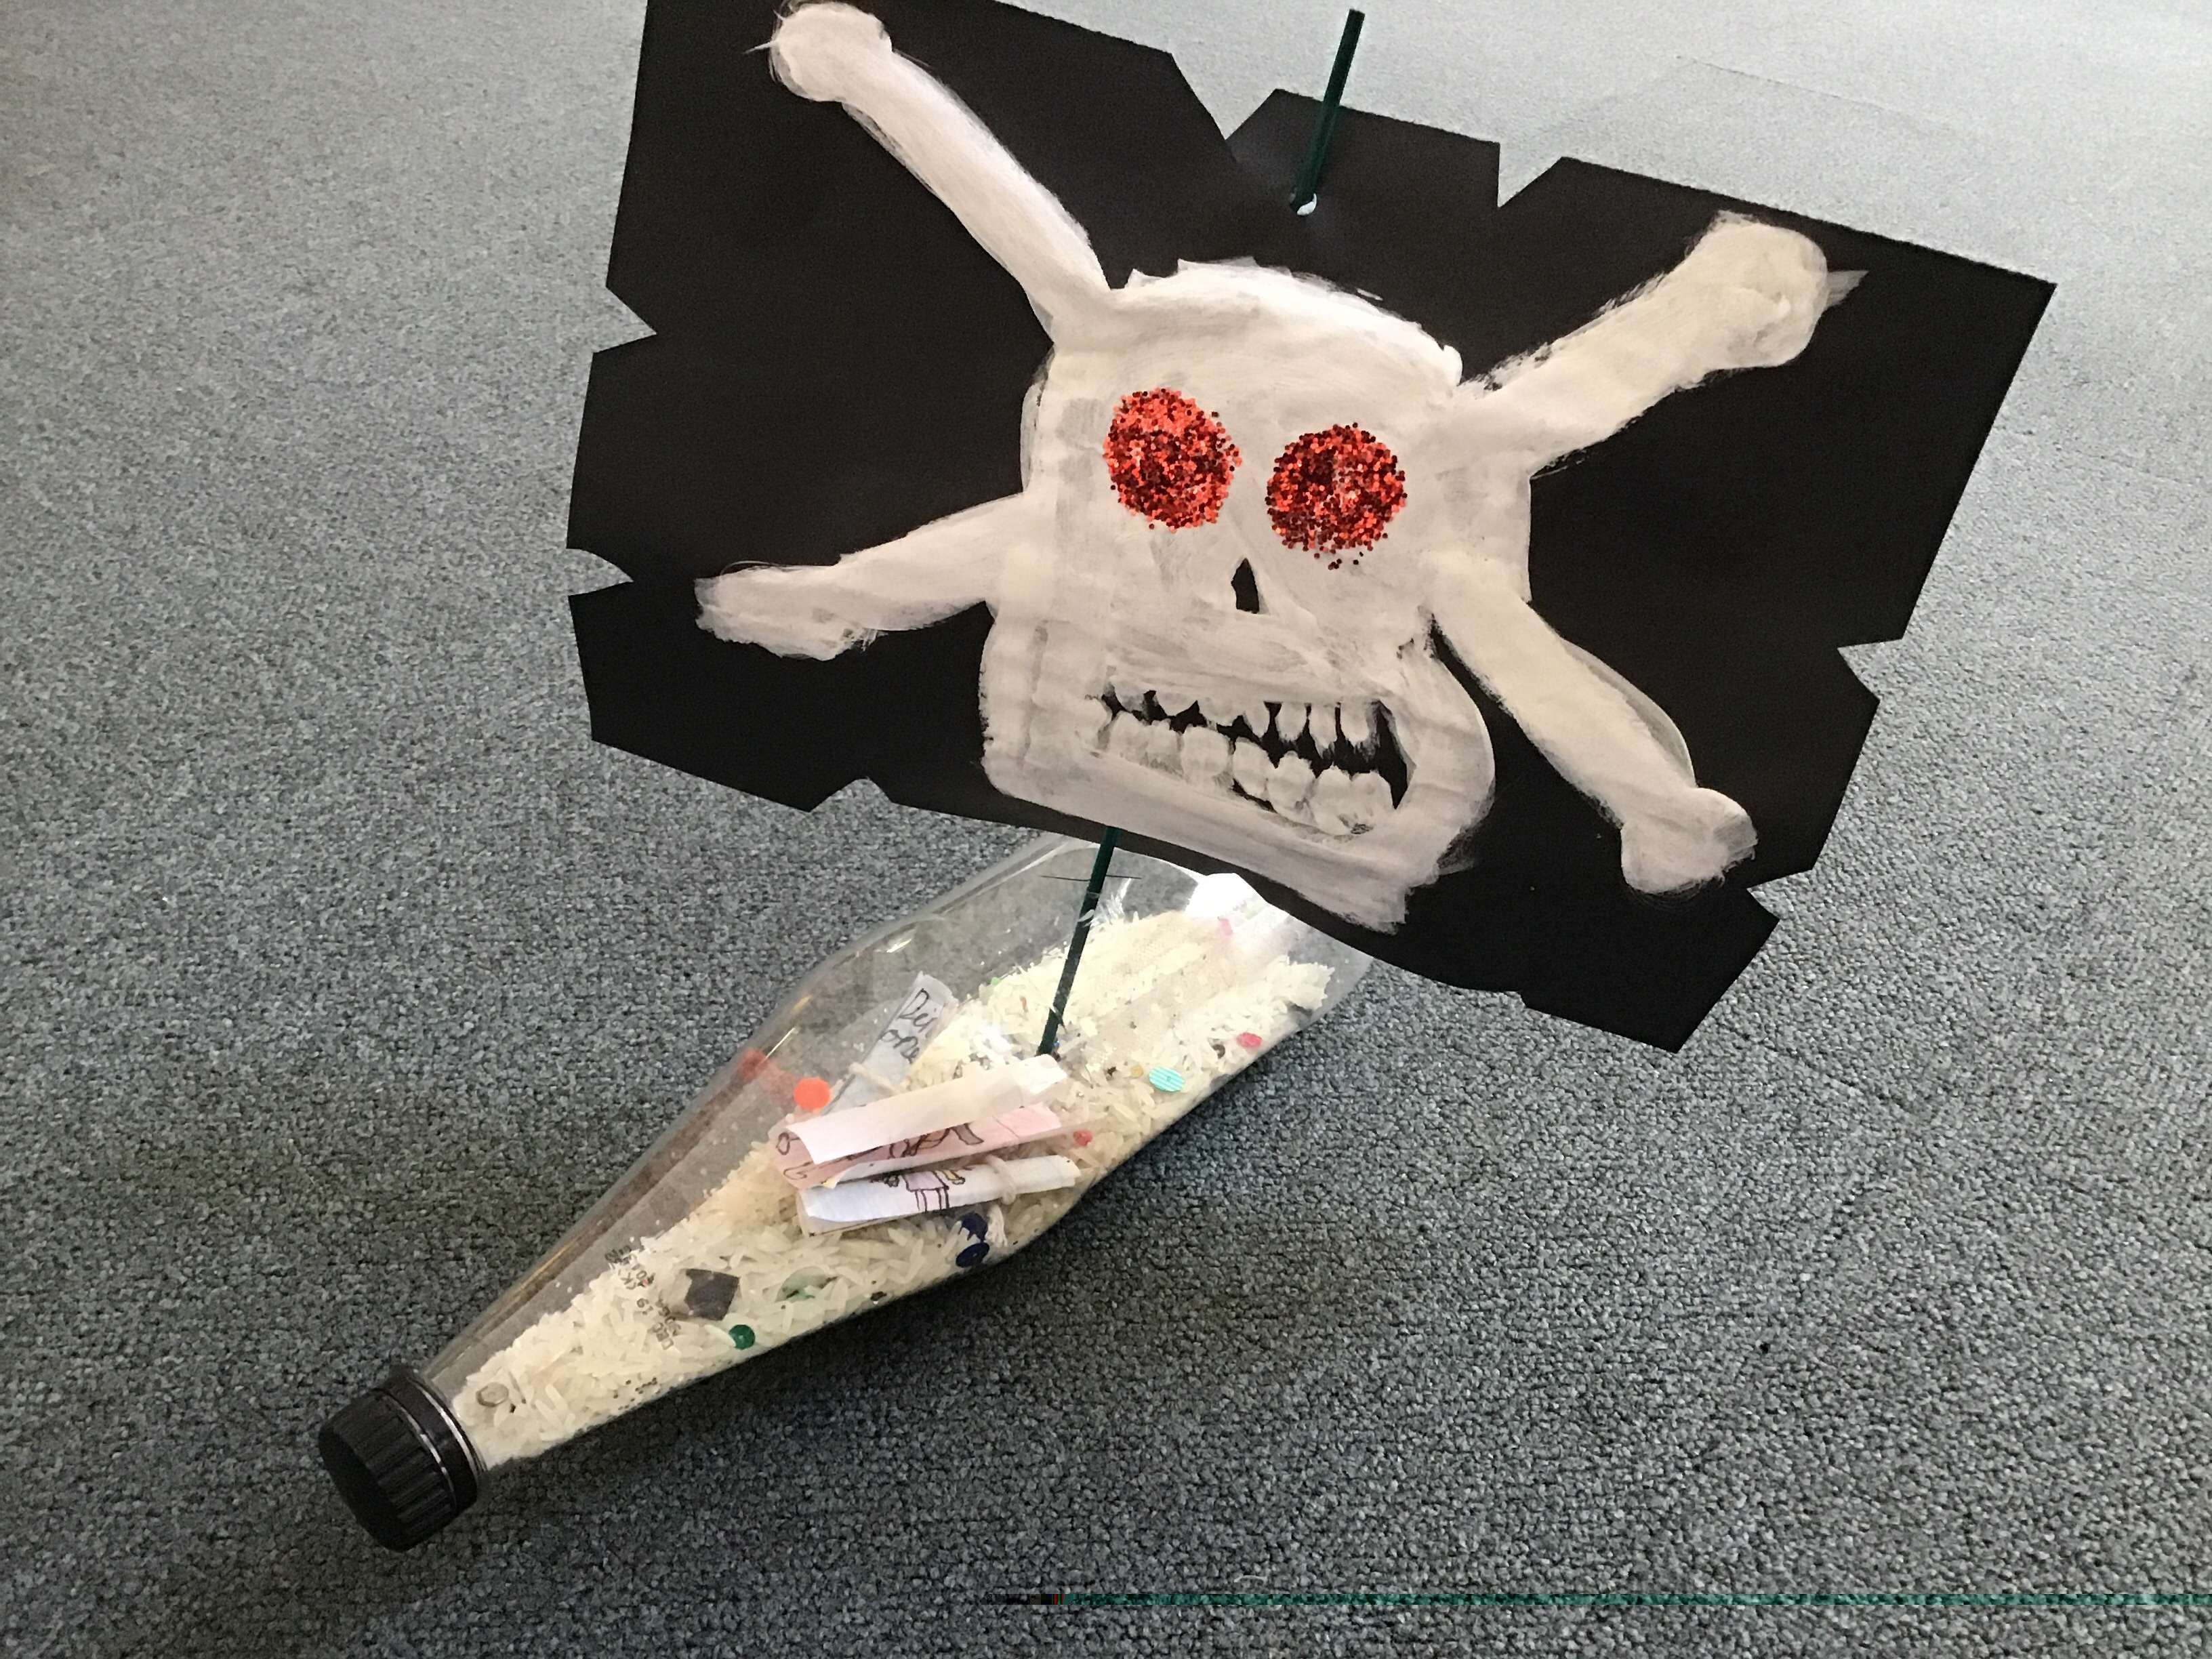 Year 2 – Design and Build a Pirate Ship